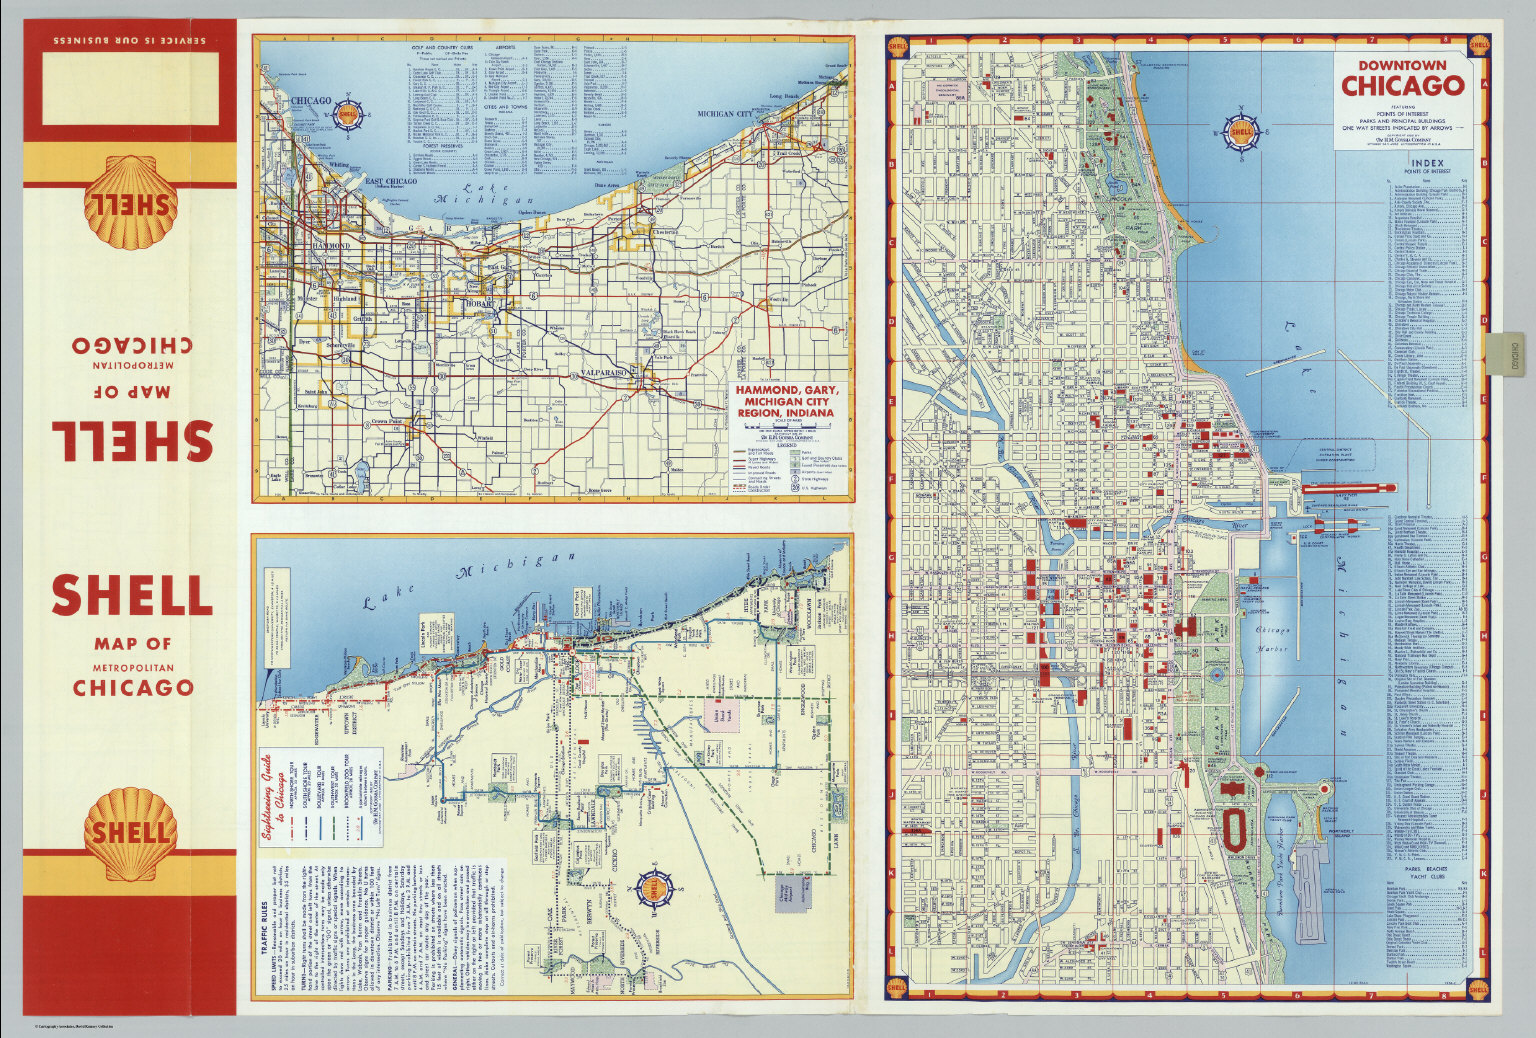 Downtown Chicago Hammond Gary Michigan City Region Indiana – Indiana Tourist Attractions Map